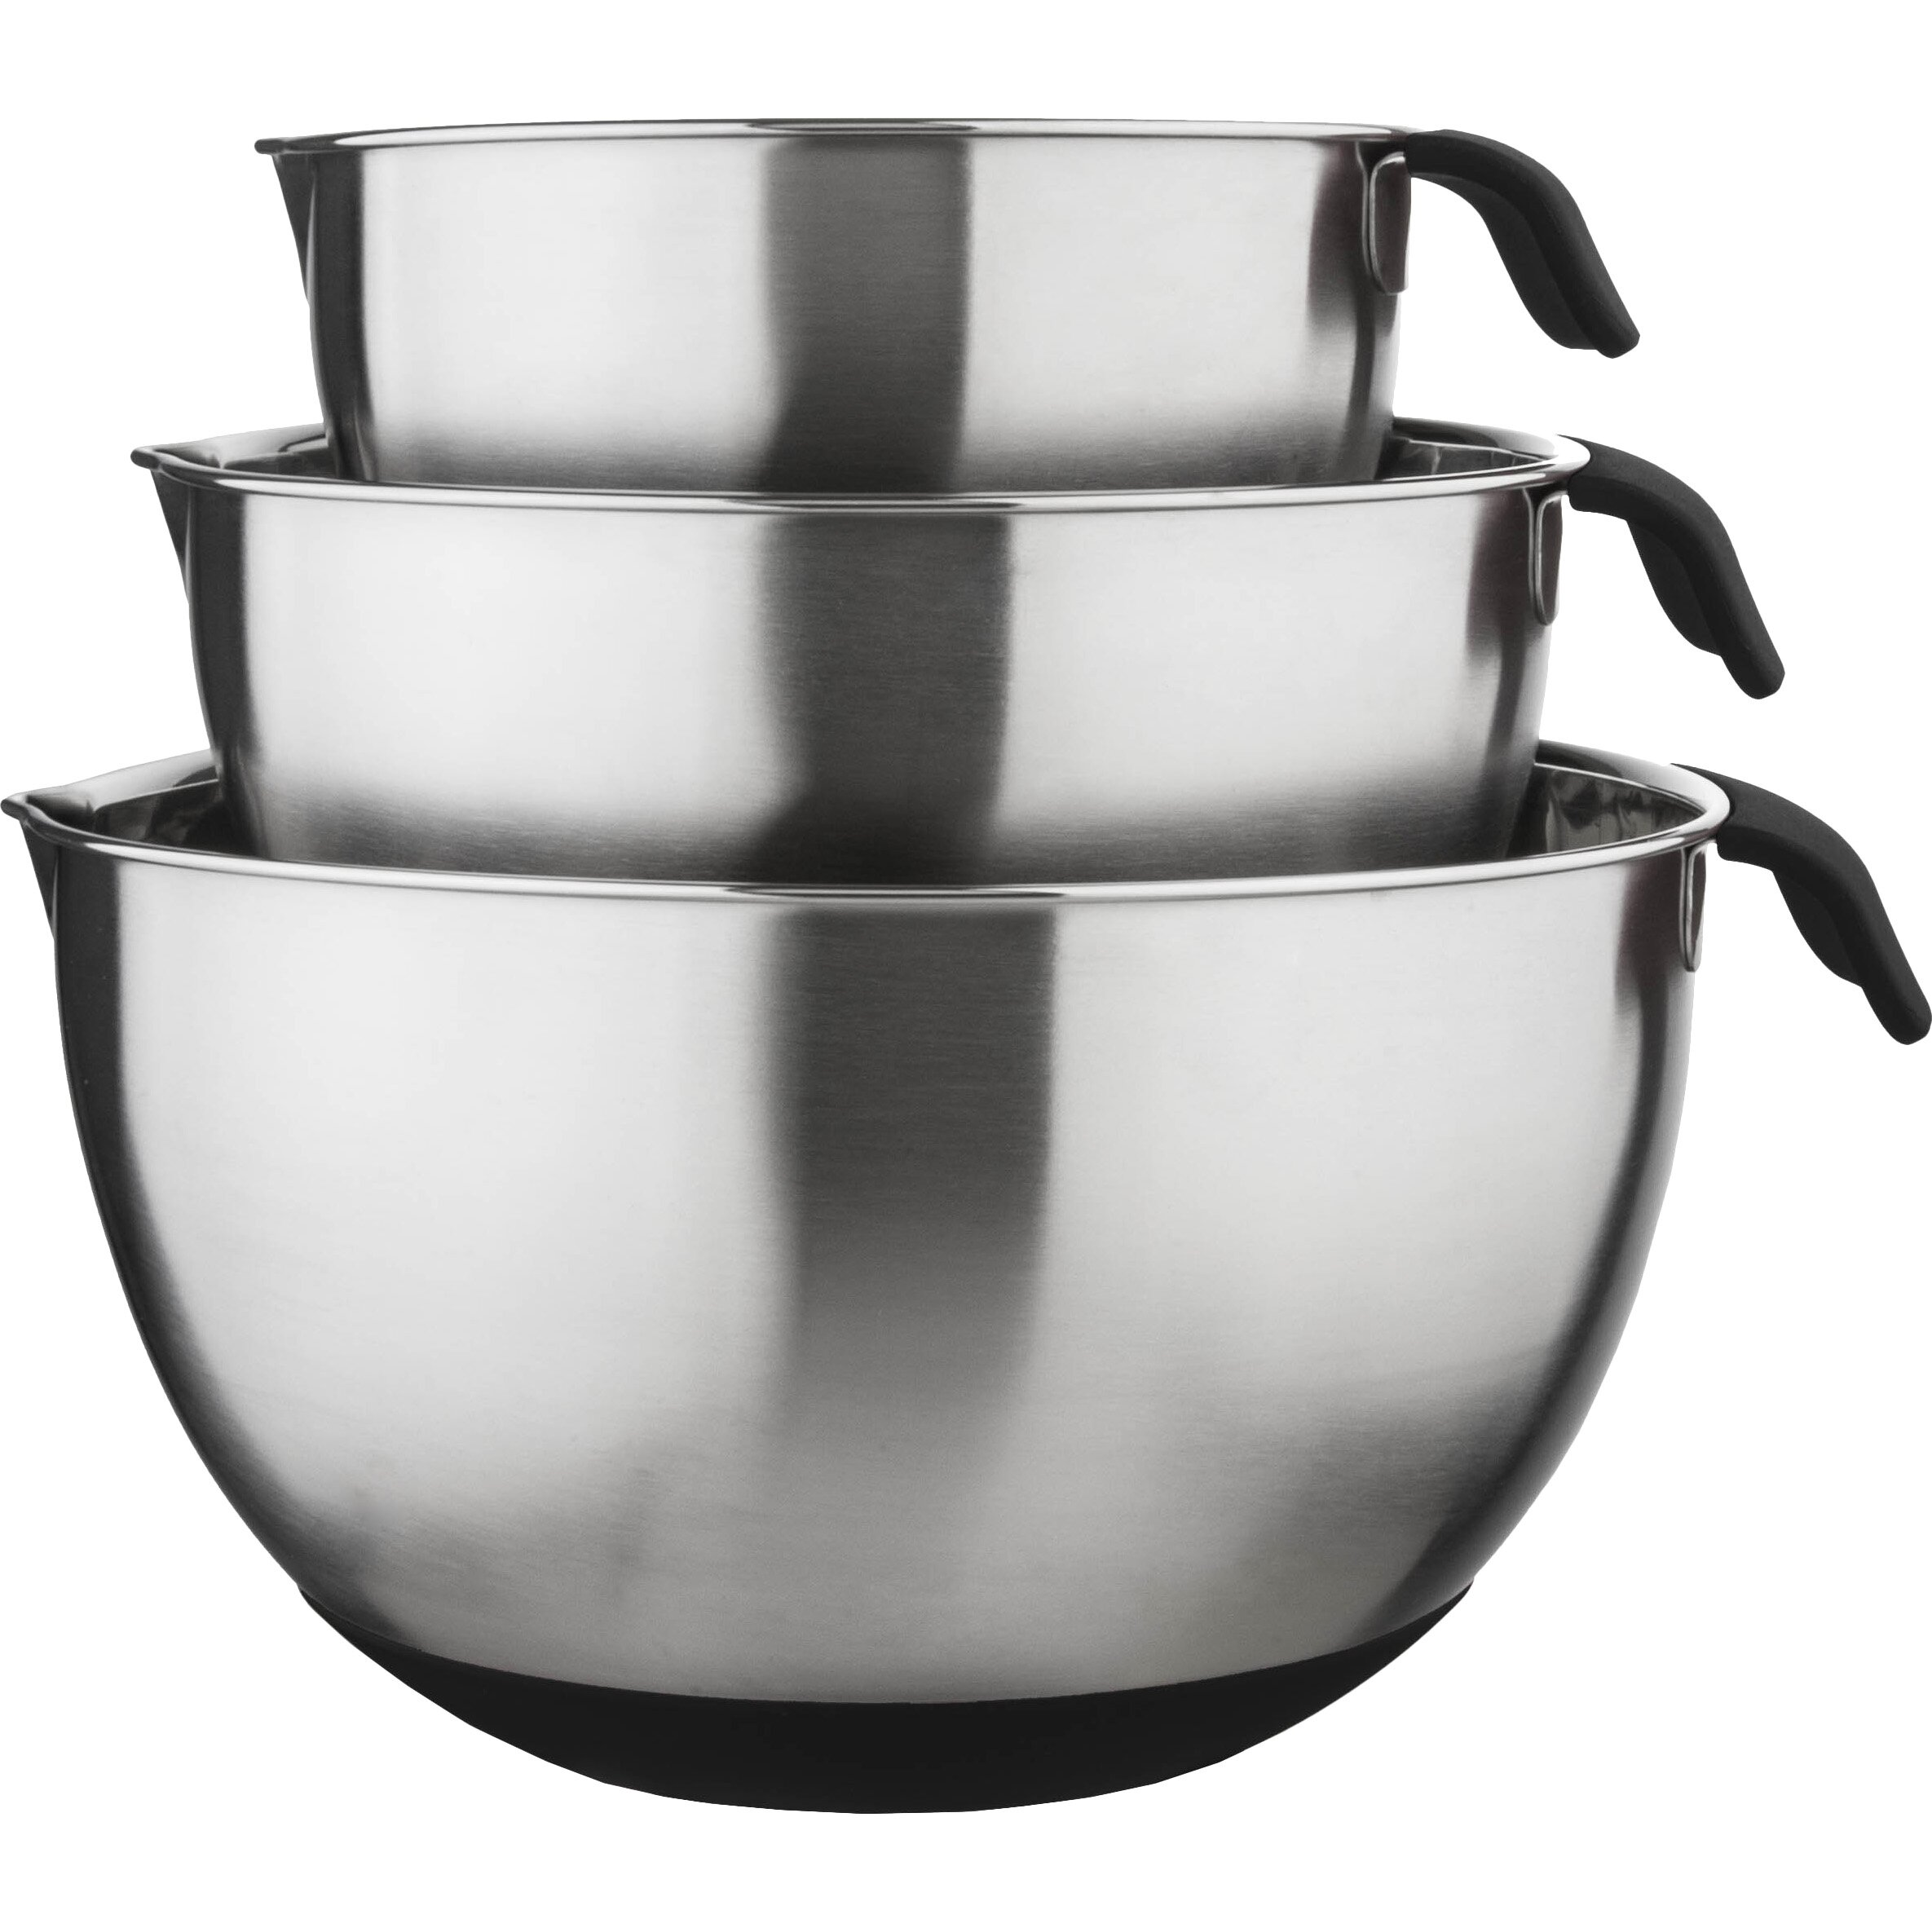 culinary edge 3 piece 18 10 stainless steel mixing bowl set reviews wayfair. Black Bedroom Furniture Sets. Home Design Ideas